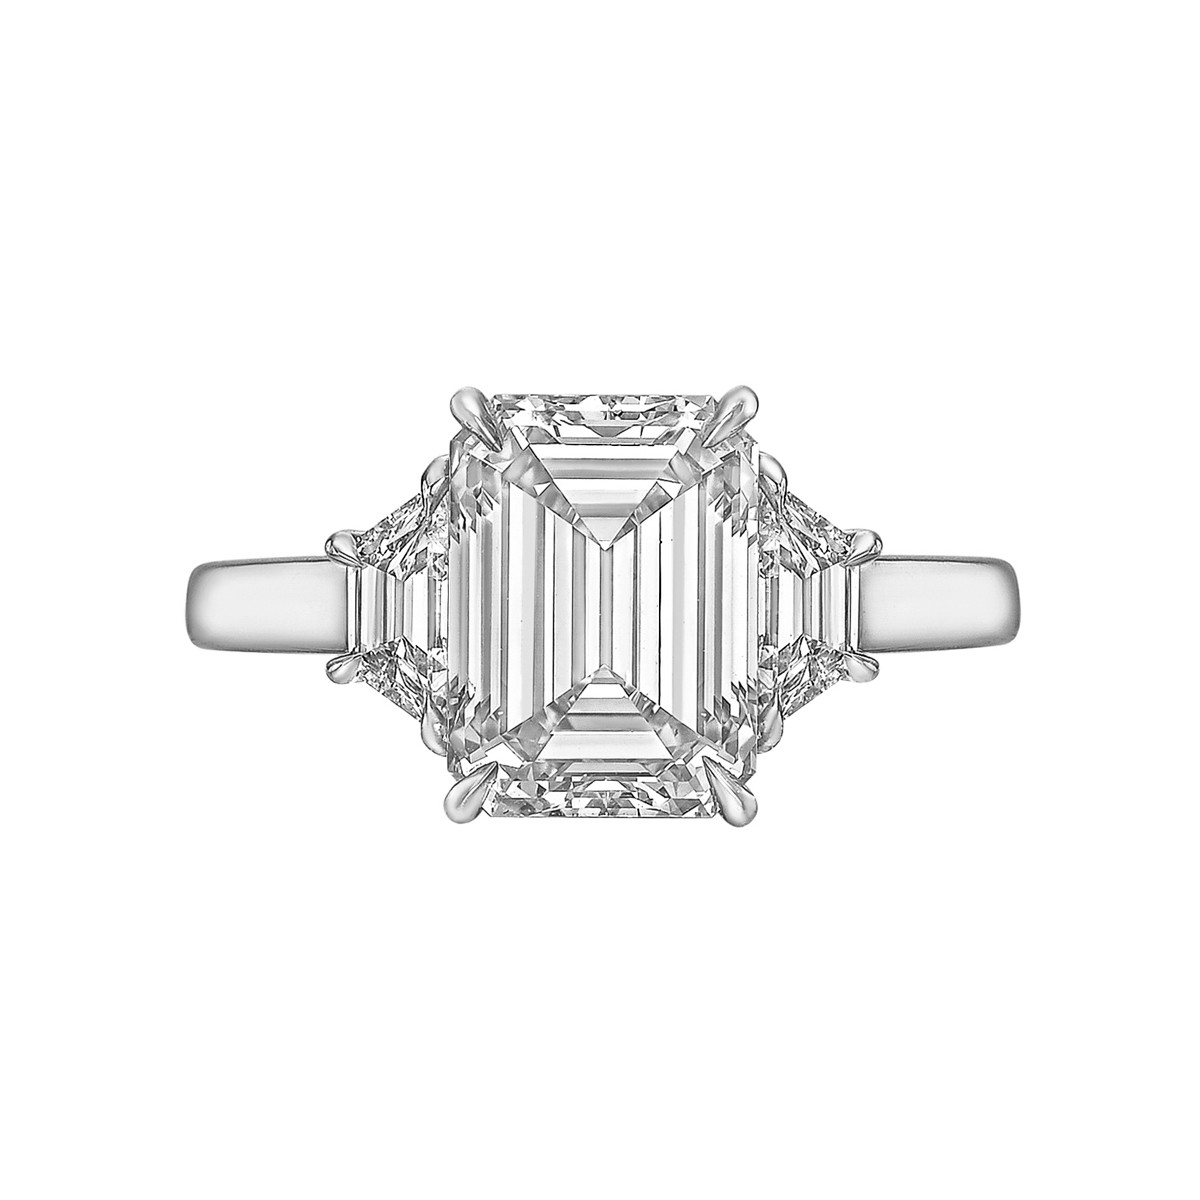 4.01ct Colorless Emerald-Cut Diamond Ring